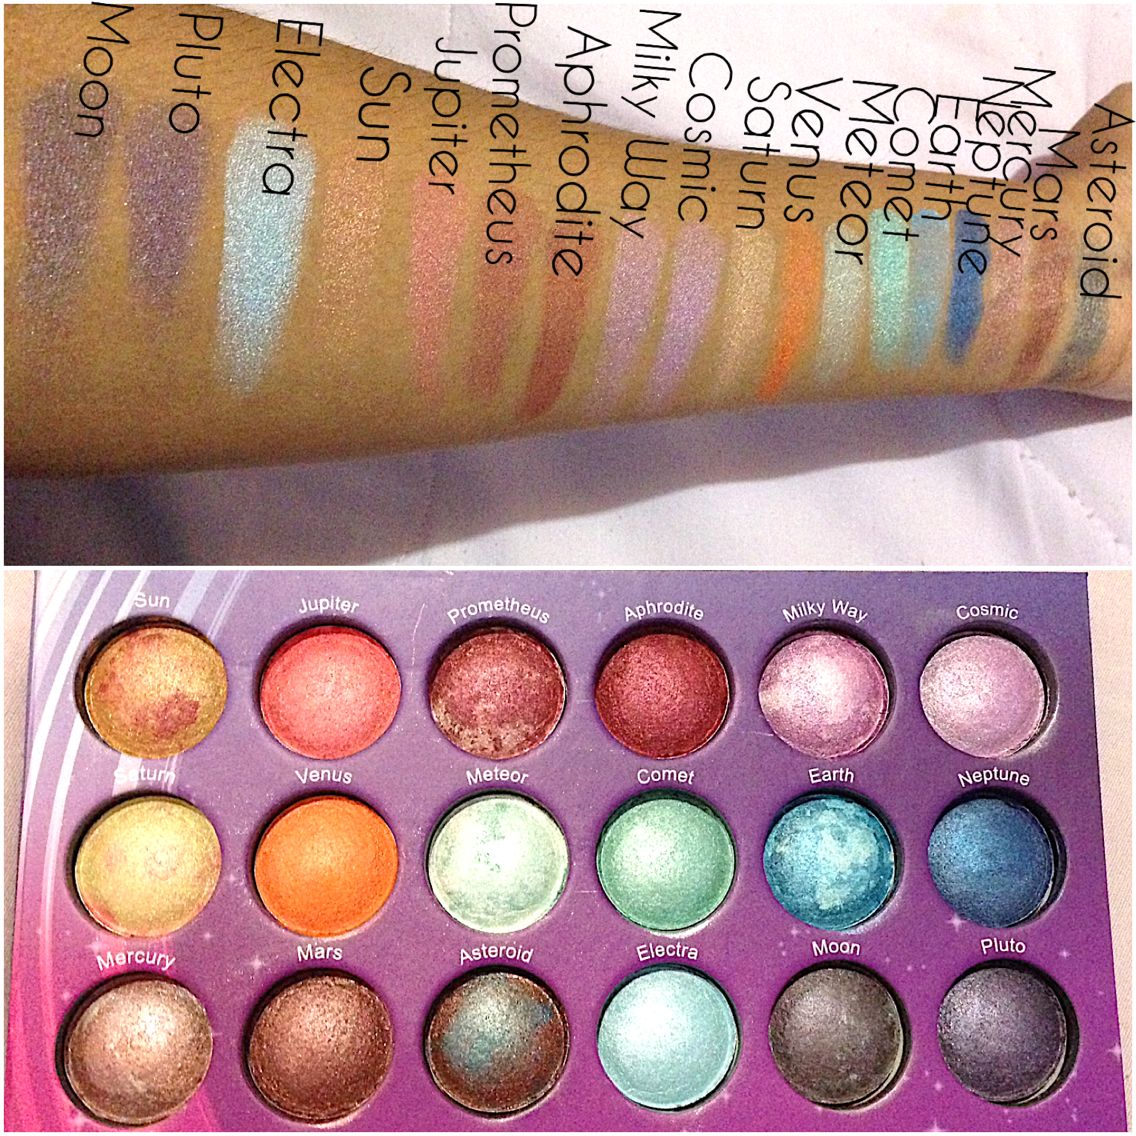 Galaxy Chic Baked Eyeshadow Palette by BH Cosmetics #14